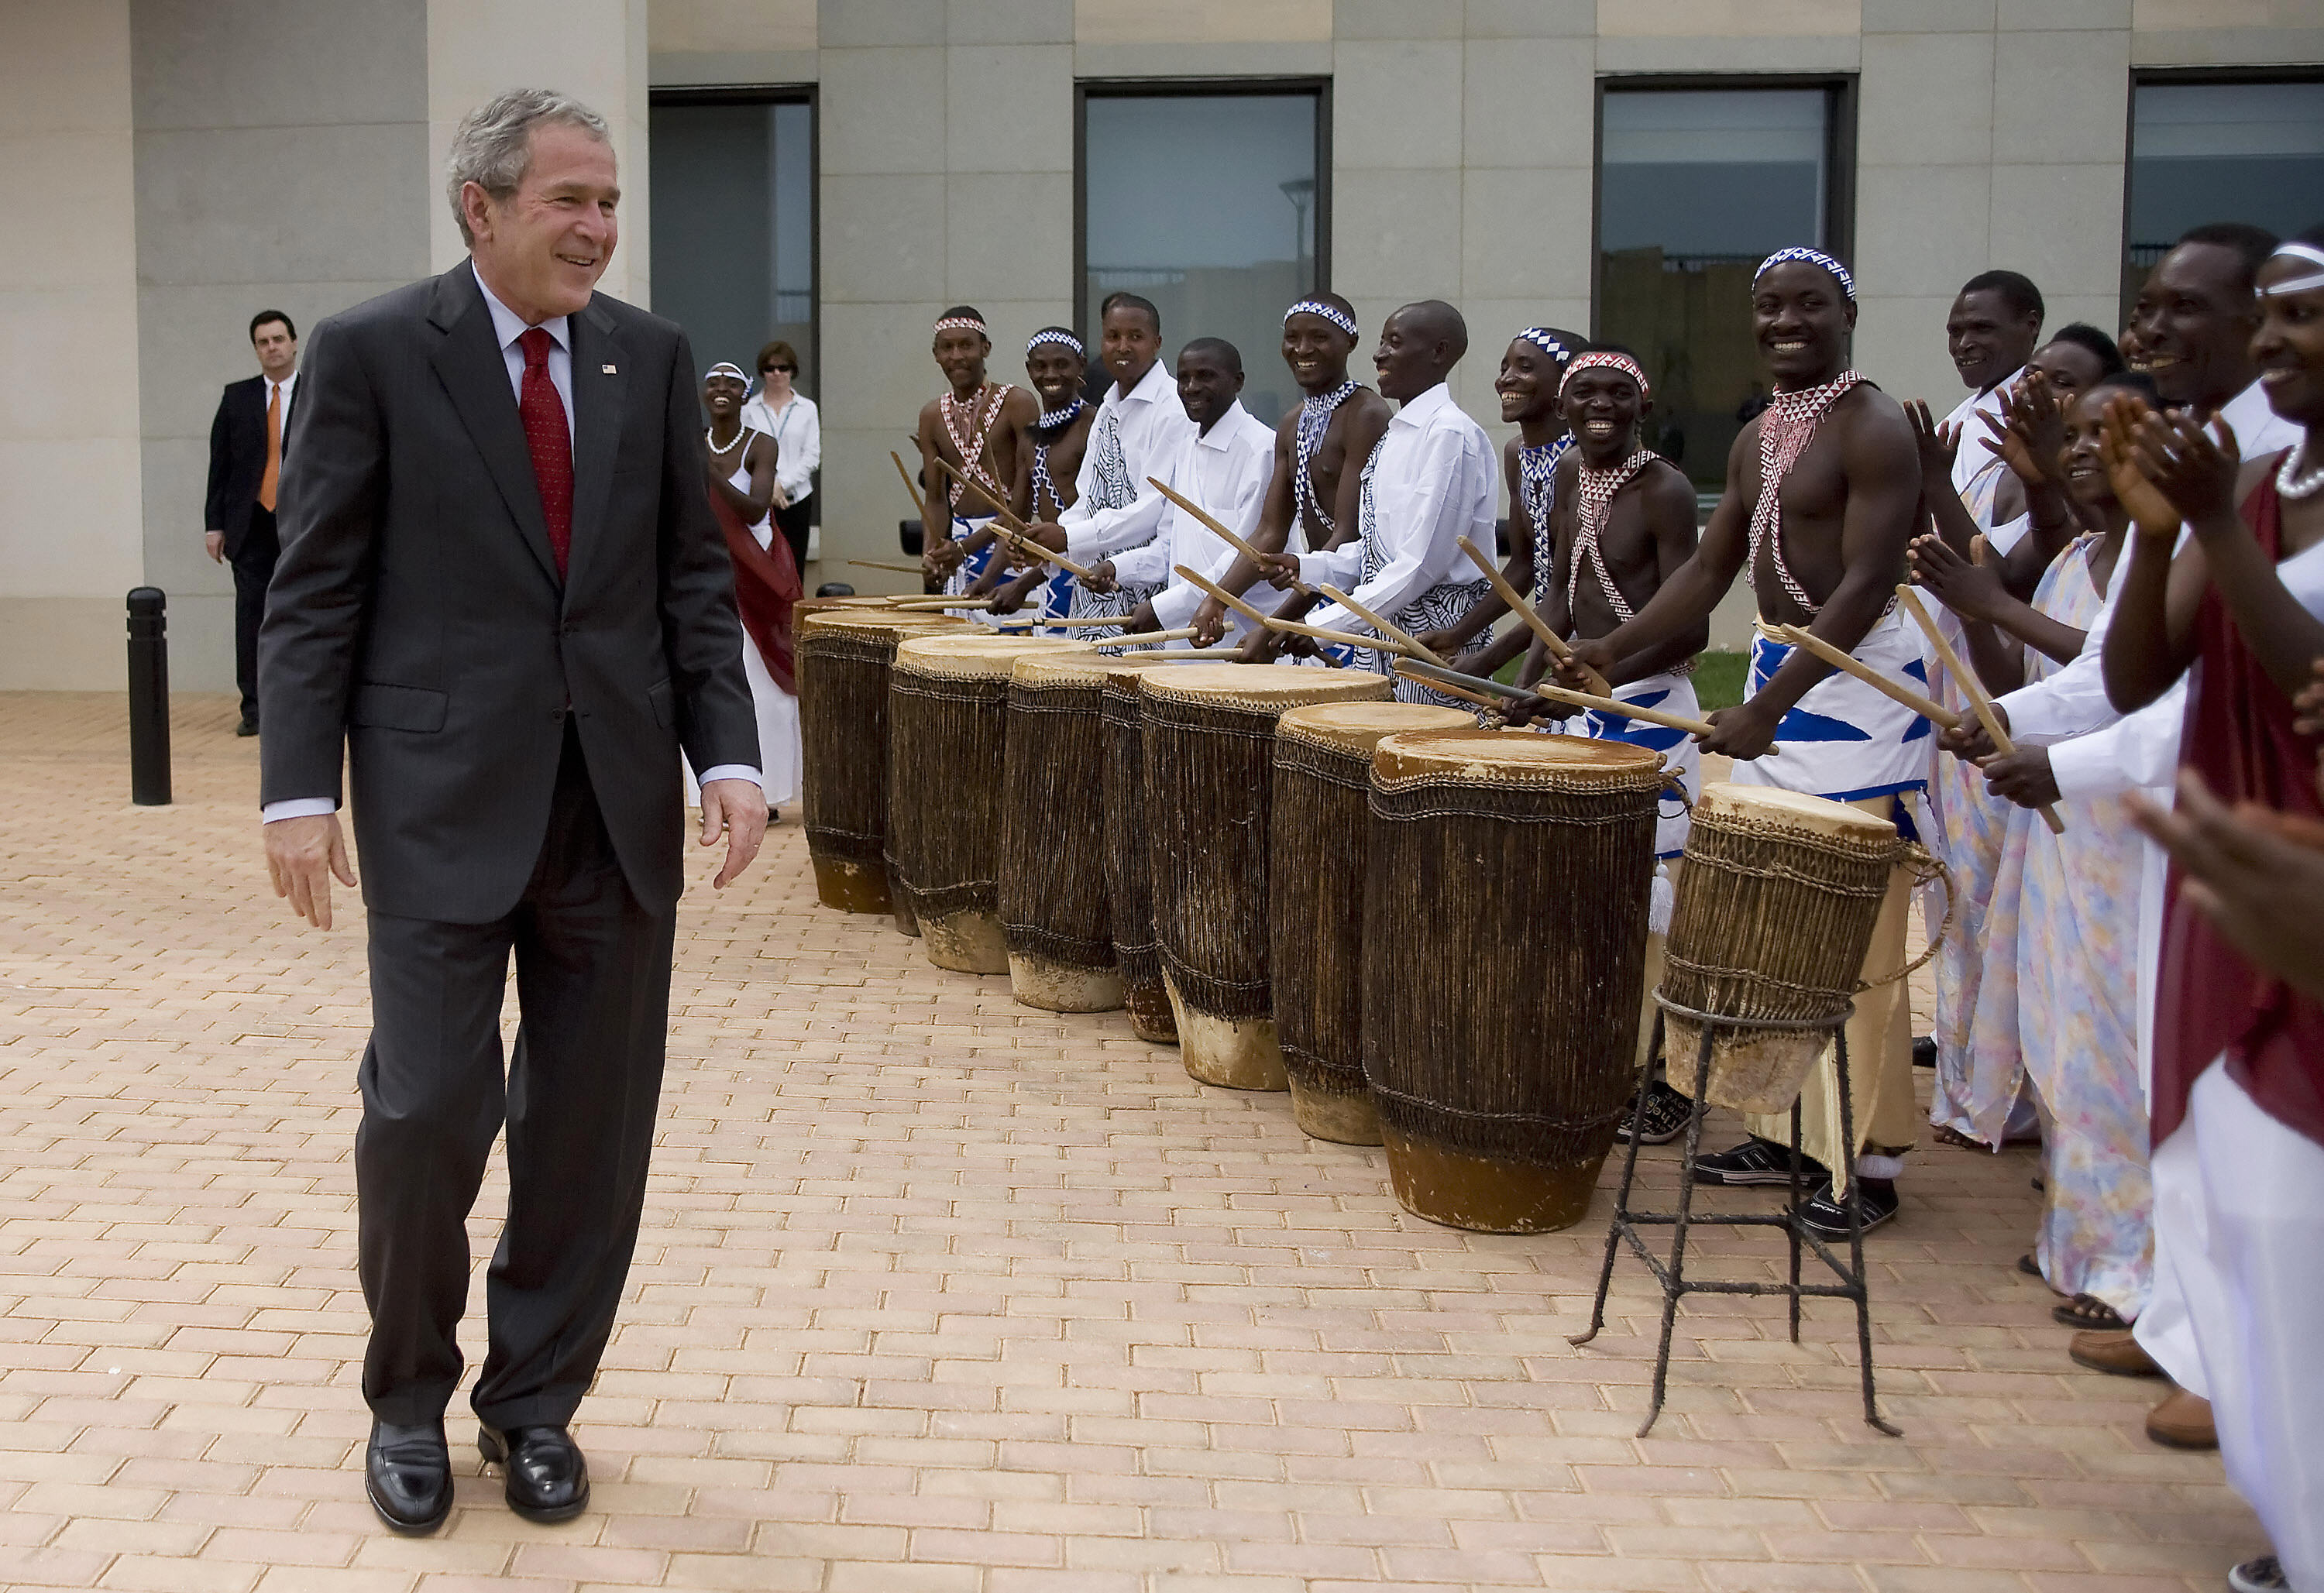 Bush dances at the ceremony after inaugurating the new US Embassy in Rwanda.